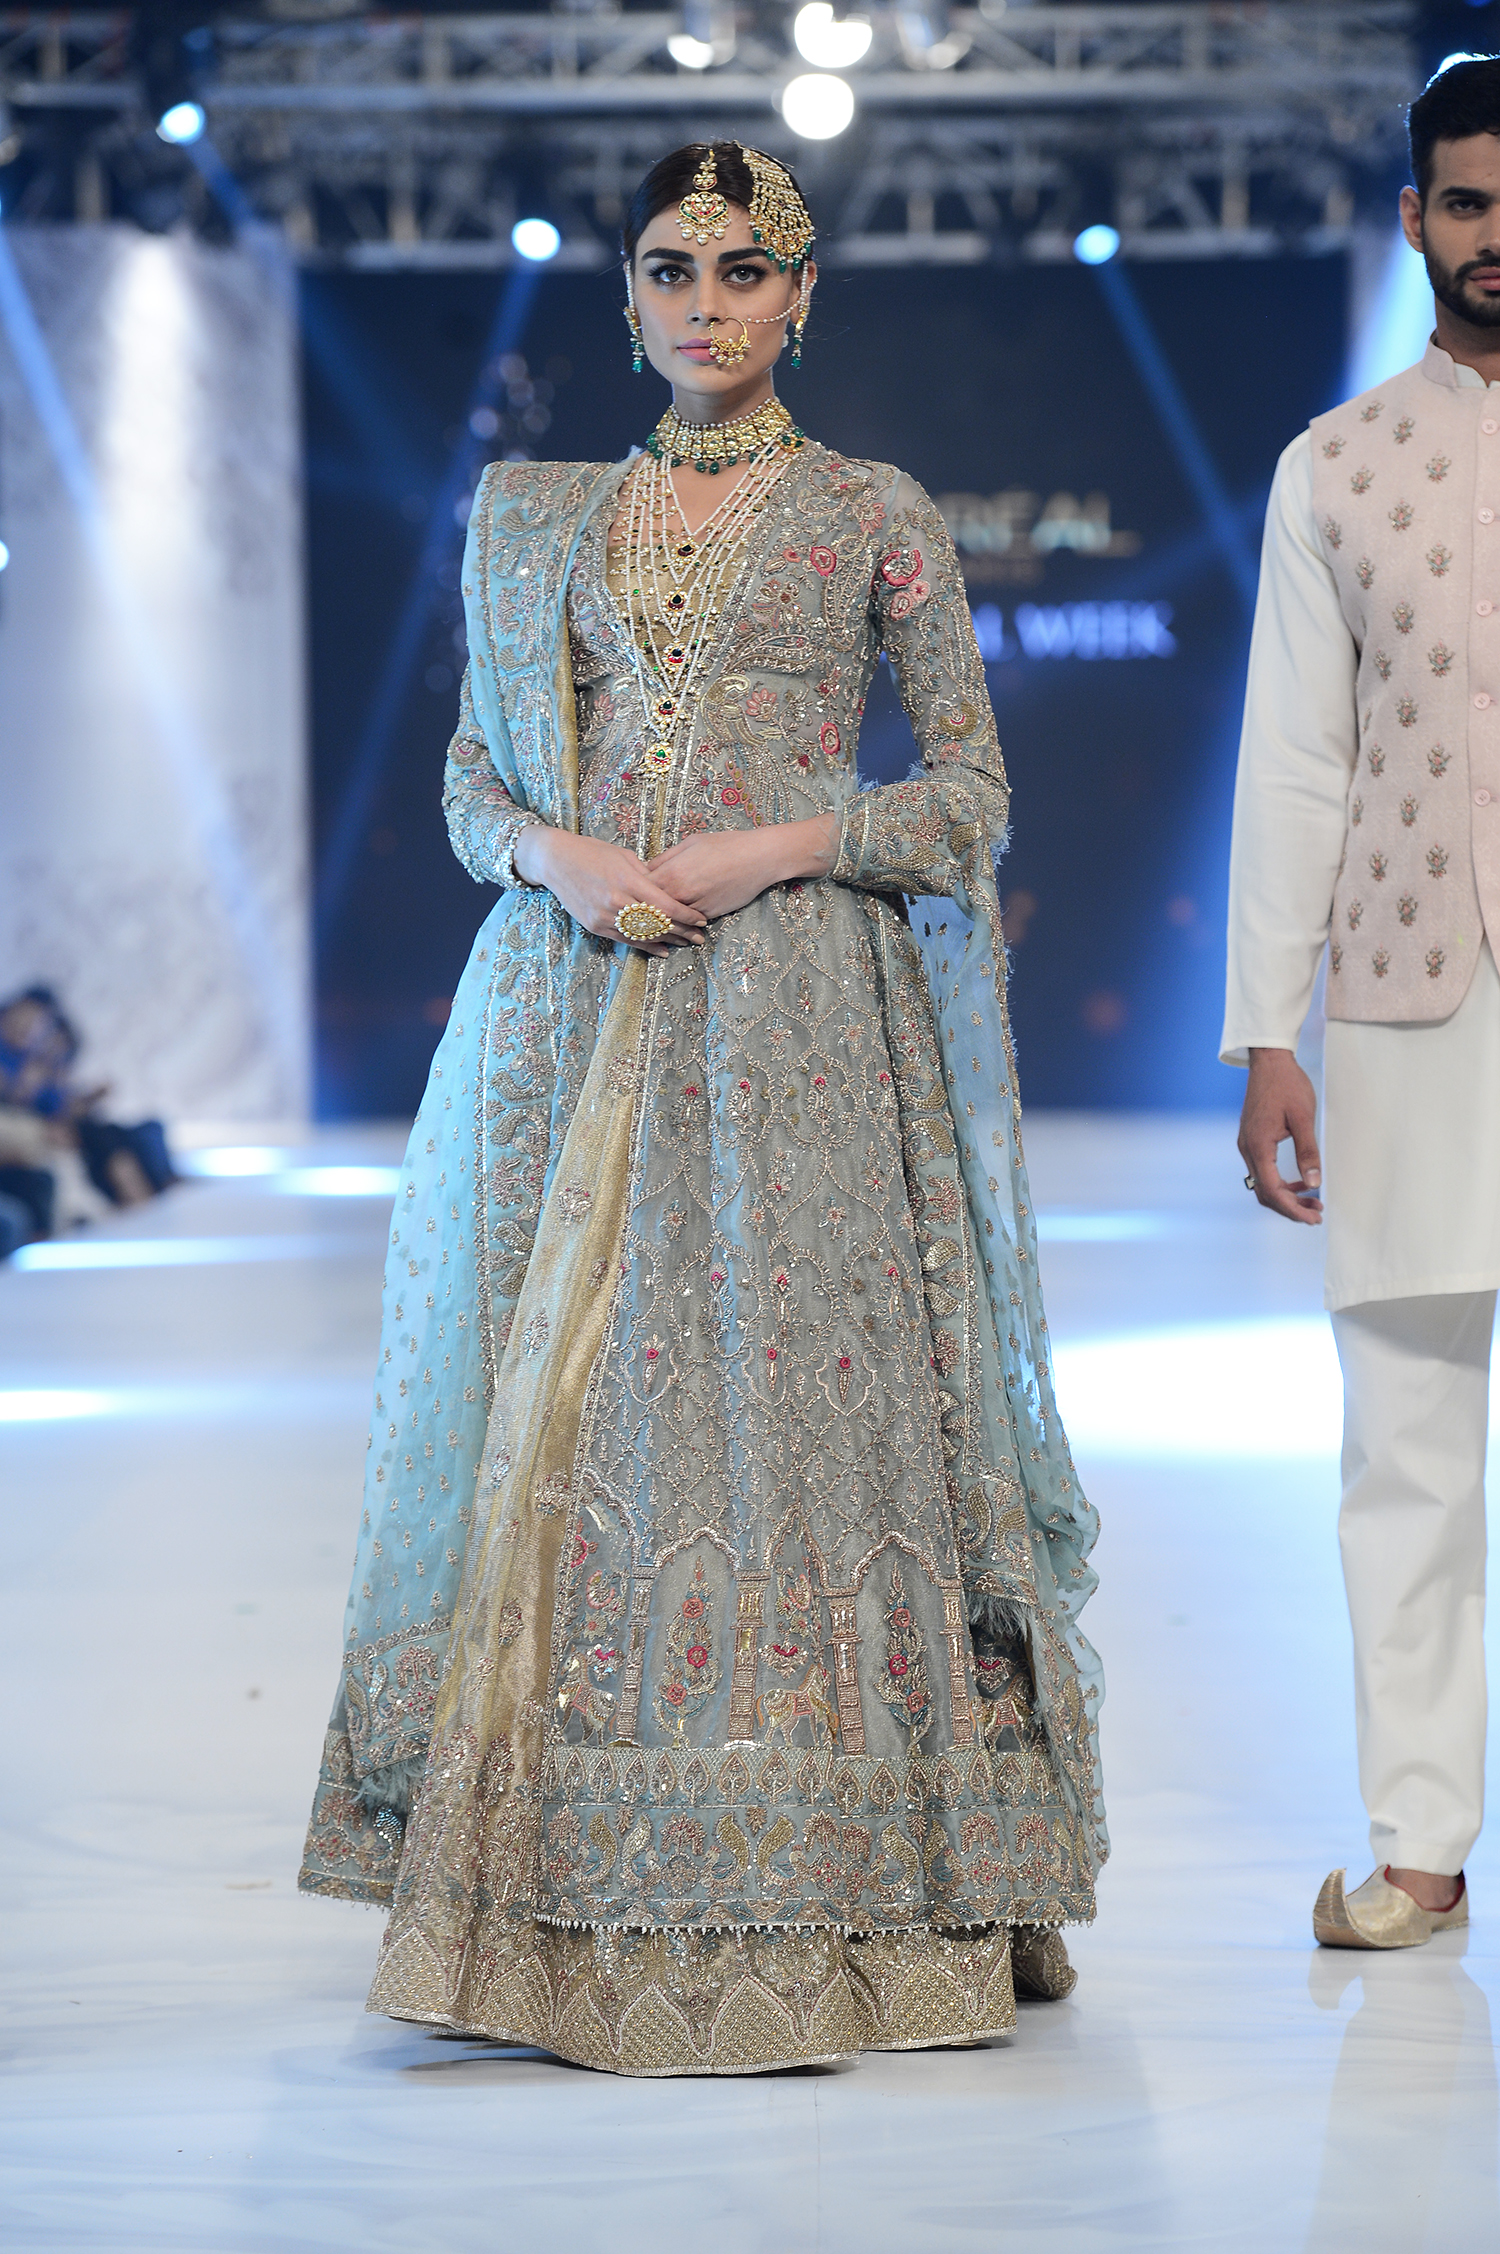 Zara Shahjahan - PFDC L'Oréal Paris Bridal Week - Photography by Faisal Farooqui, Dragonfly